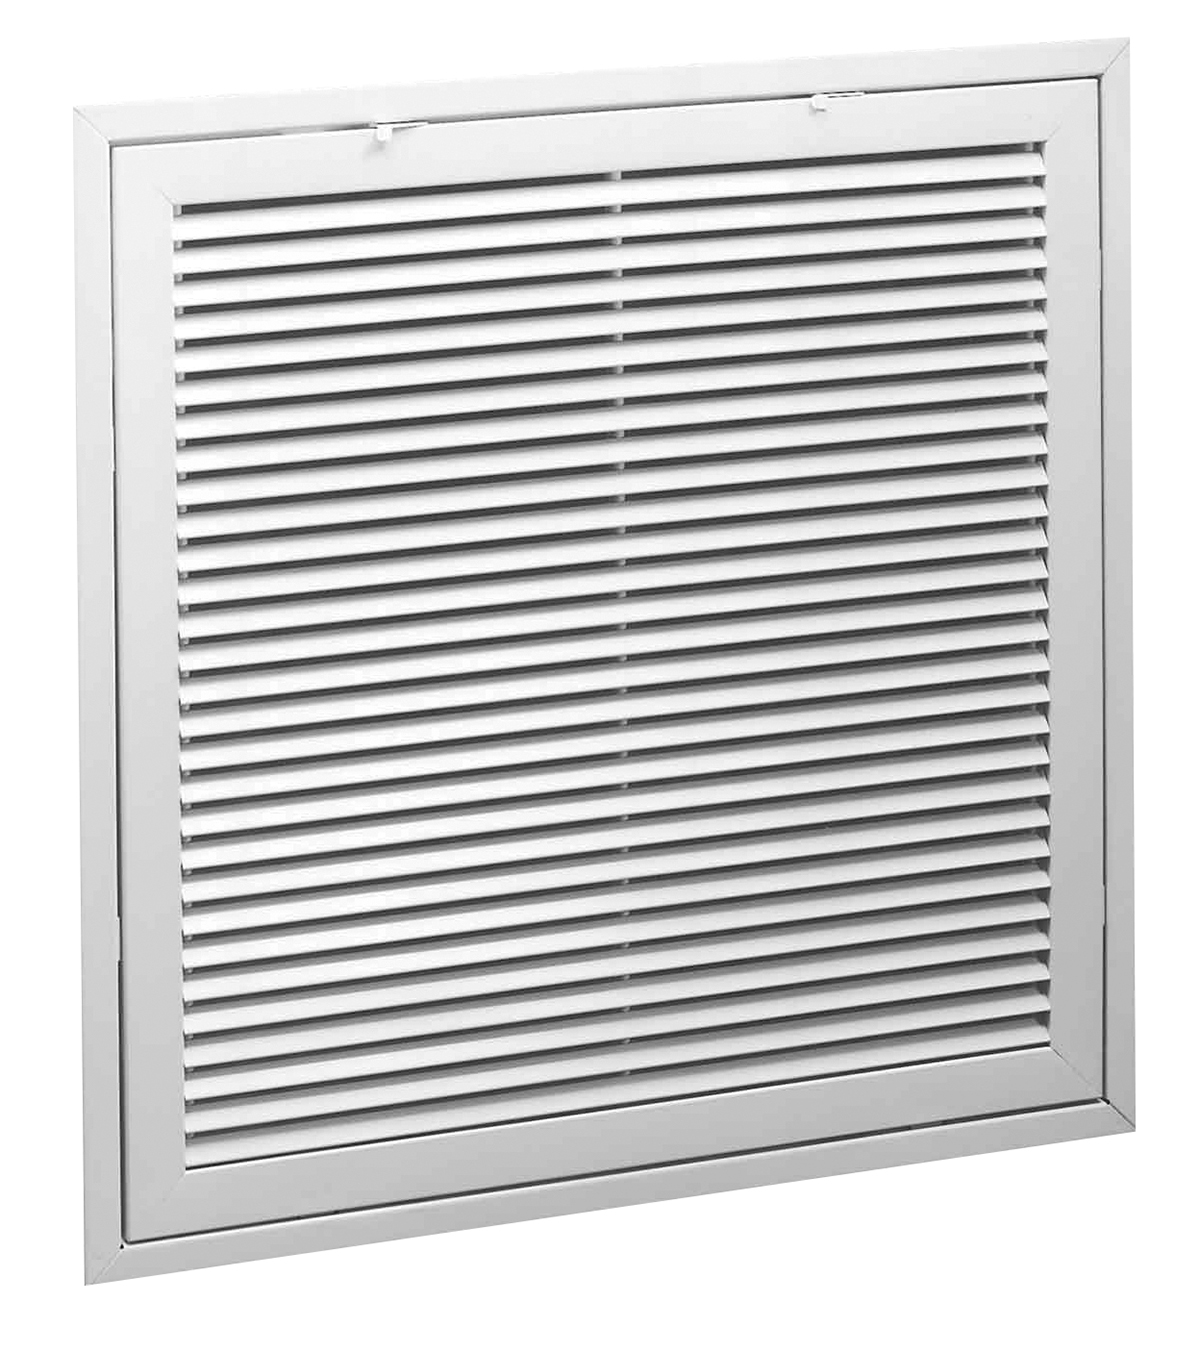 #404040 96AFBTI Steel Fixed Bar Return Air Filter Grille With R4  Highly Rated 2319 Drop Ceiling Return Air Grille wallpapers with 1200x1353 px on helpvideos.info - Air Conditioners, Air Coolers and more